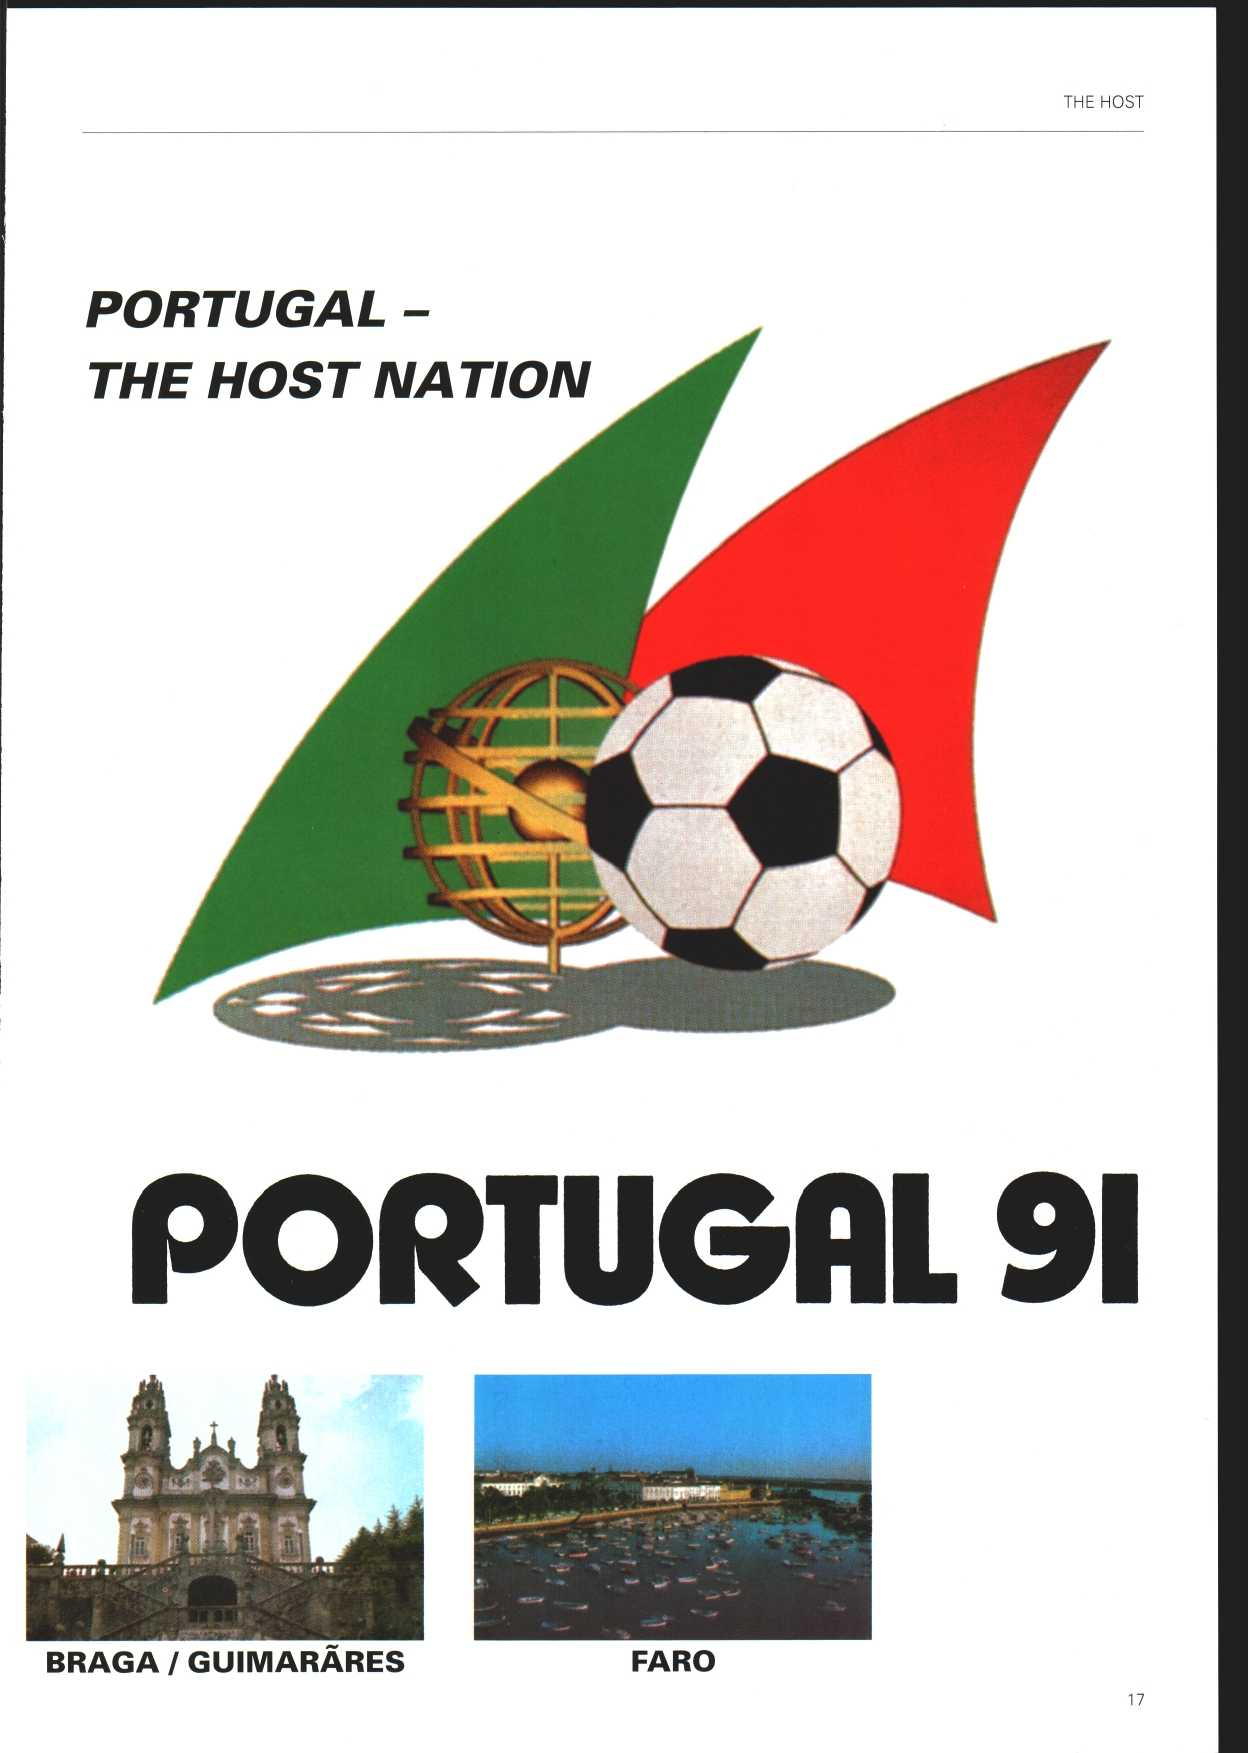 THE HOST PORTUGAL - THE HOST NATION